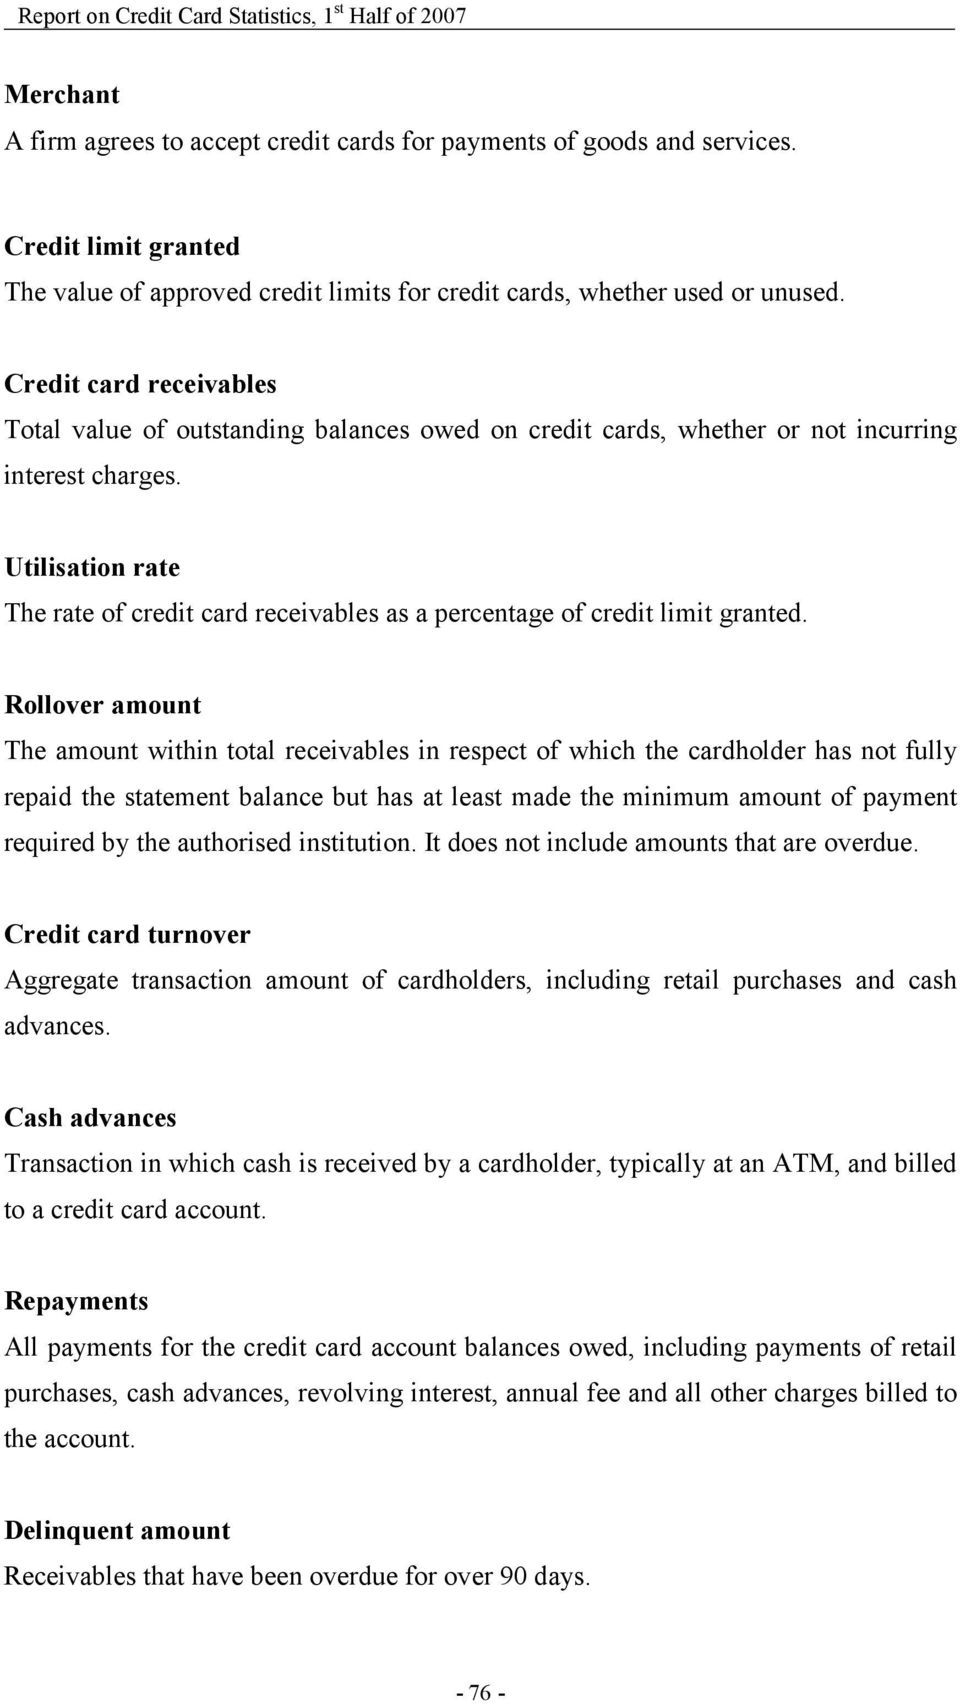 Utilisation rate The rate of credit card receivables as a percentage of credit limit granted.